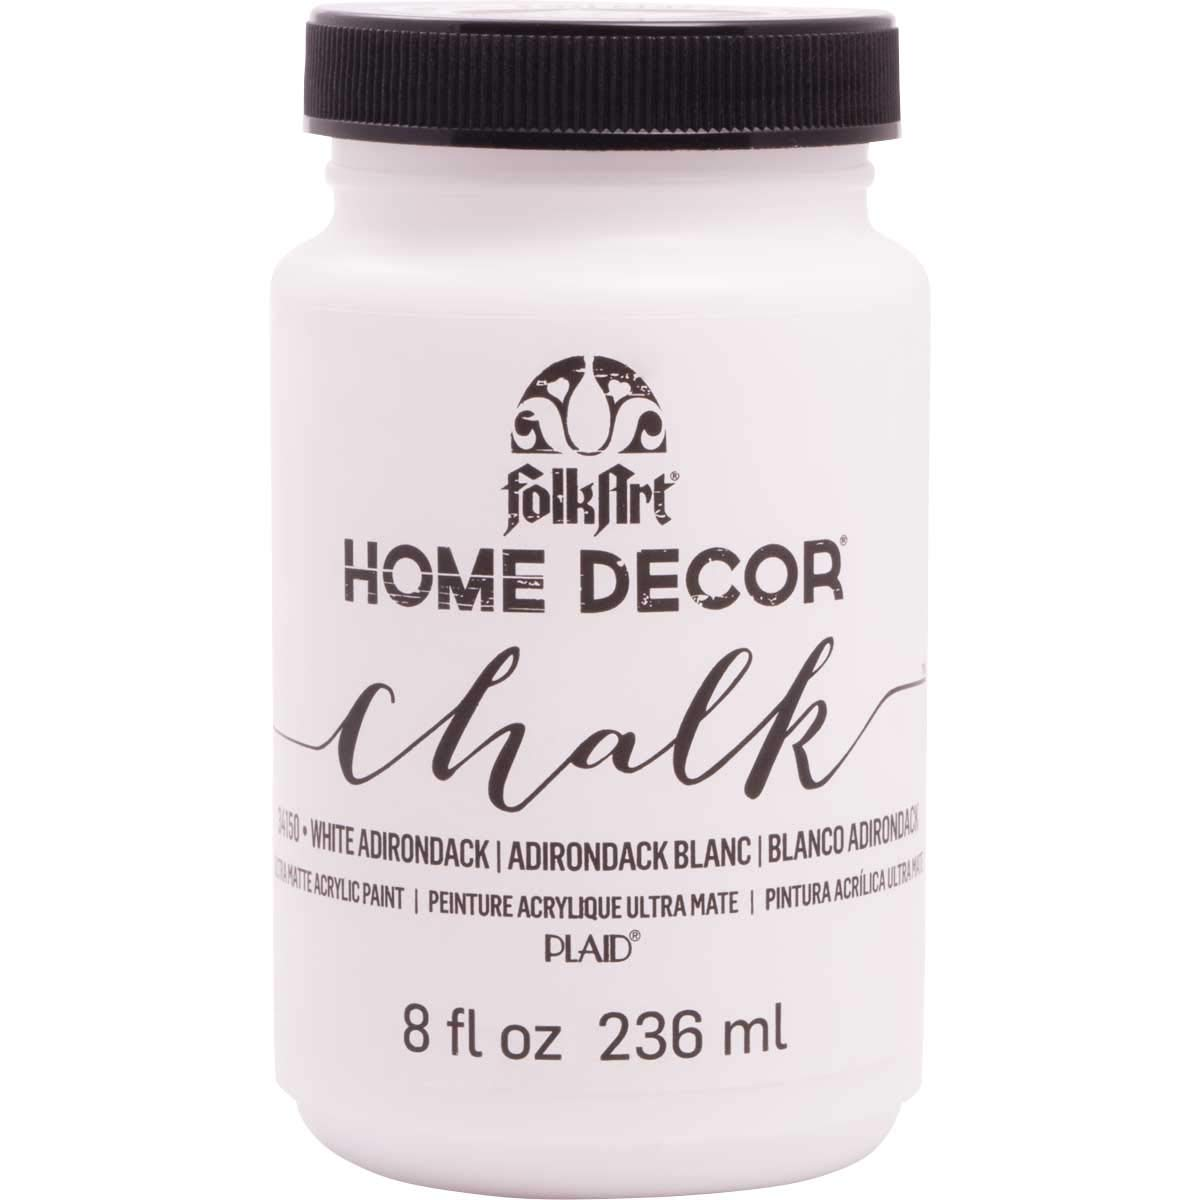 FolkArt 34150 Home Decor Chalk Furniture & Craft Paint in Assorted Colors, 8 ounce, White Adirondack